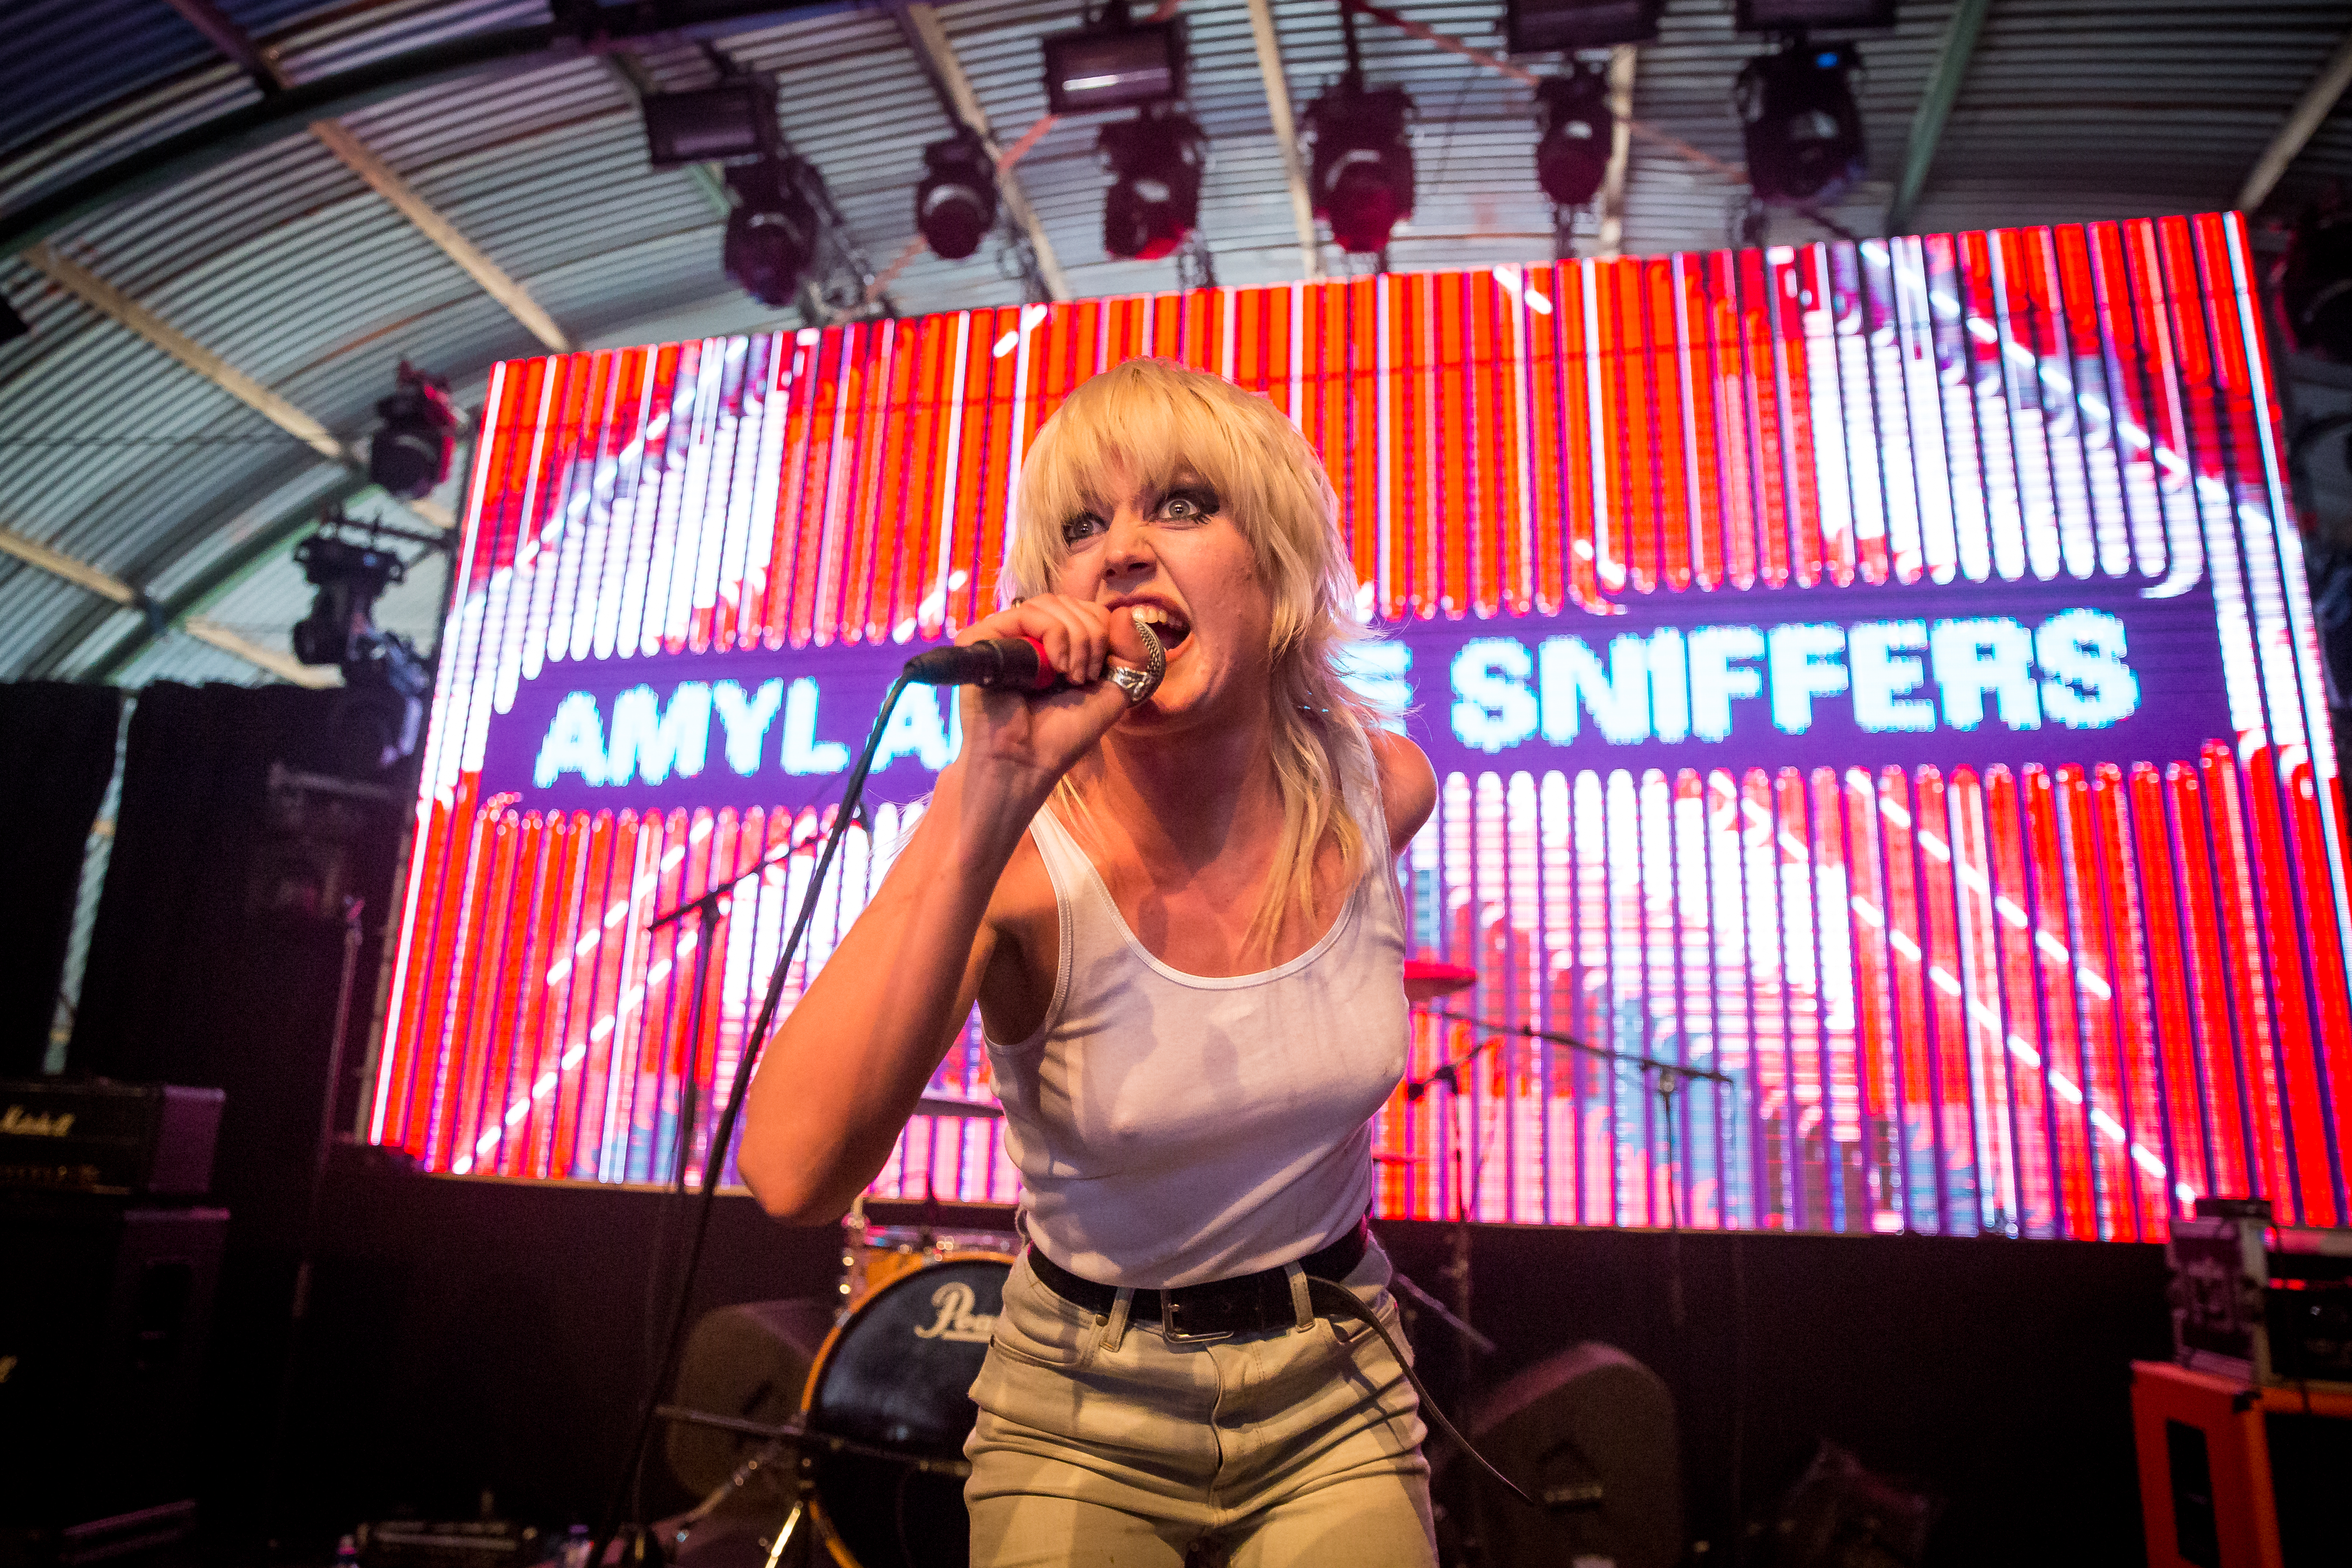 Amyl and the sniffers - Lowlands 2018